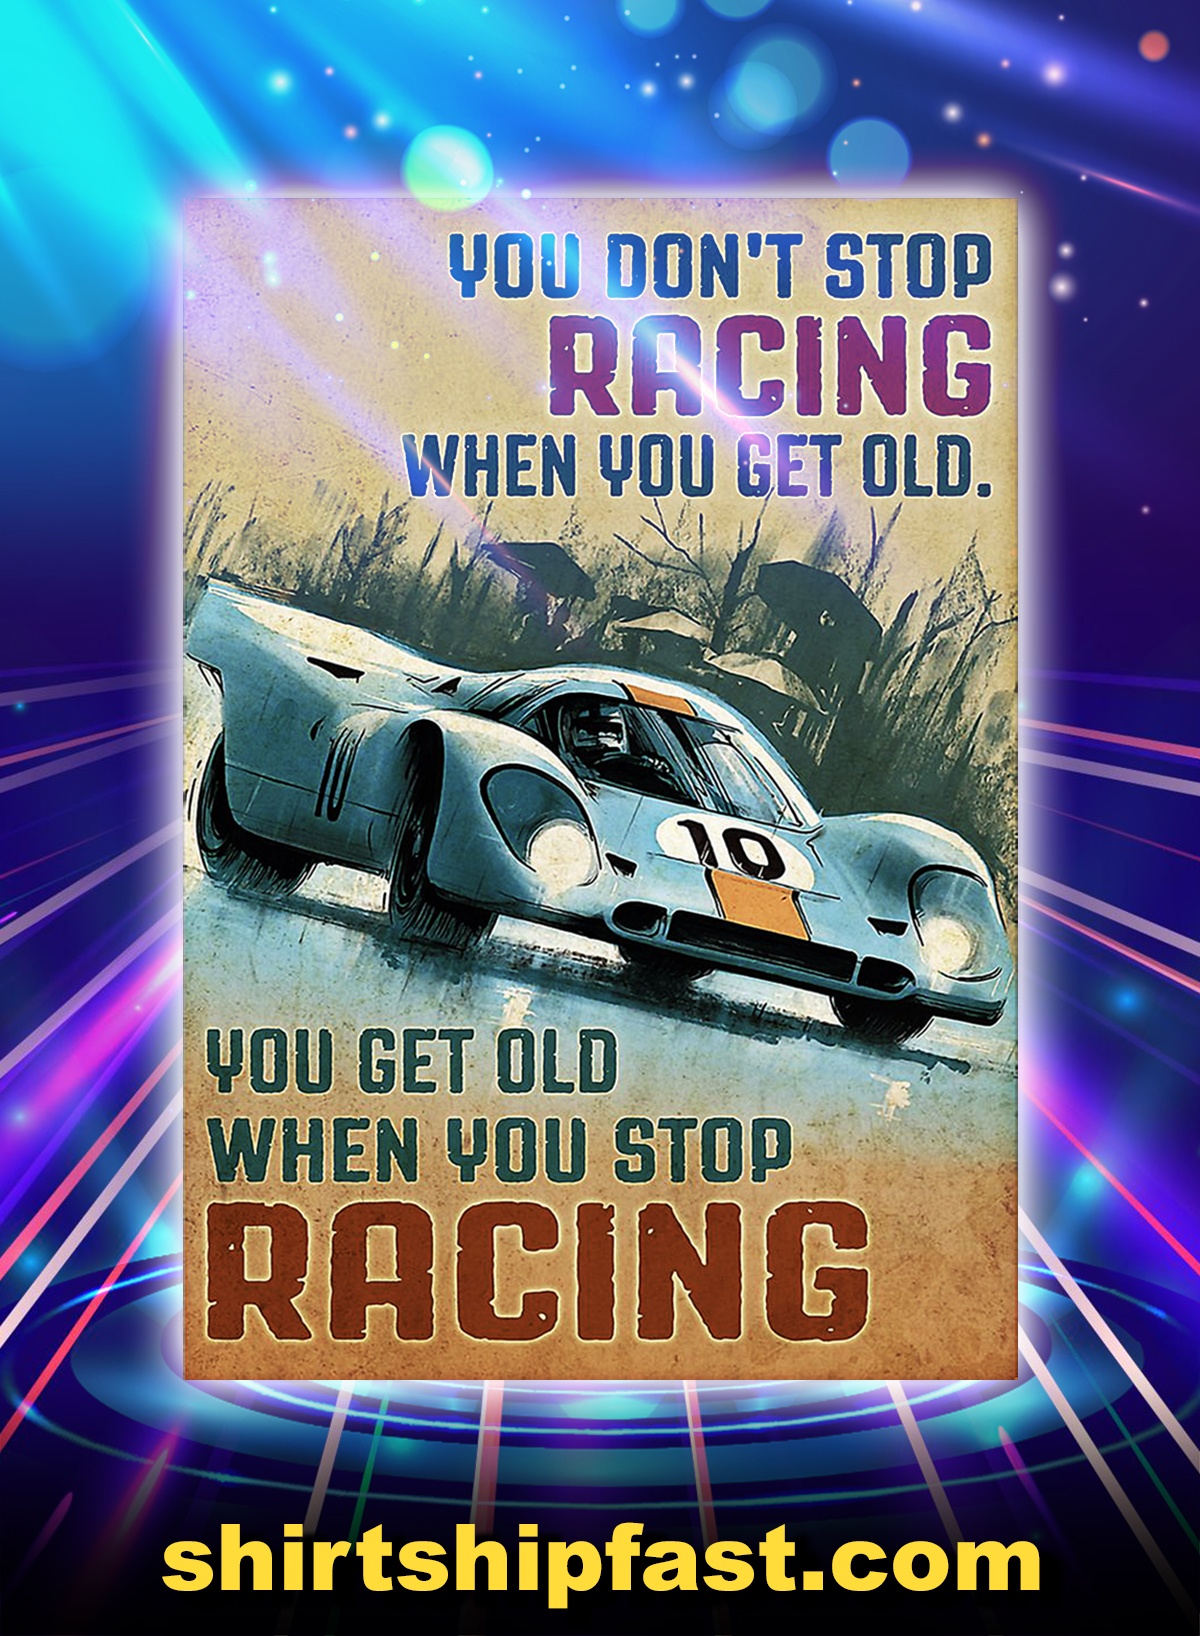 Sport car you don't stop racing when you get old poster - A1